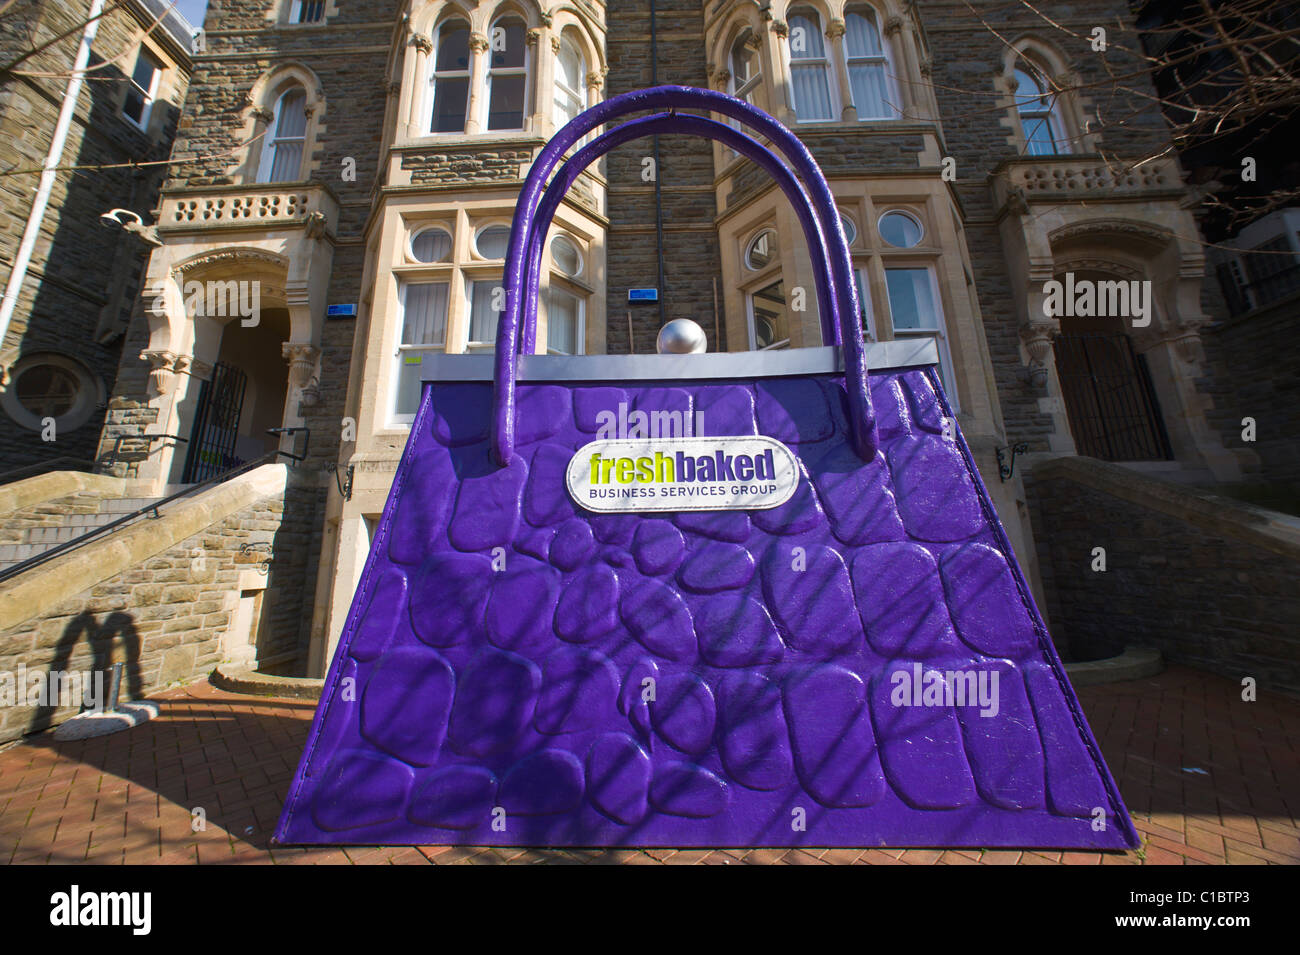 Enormous promotional purple handbag outside offices of a business services group in Cardiff South Wales UK - Stock Image